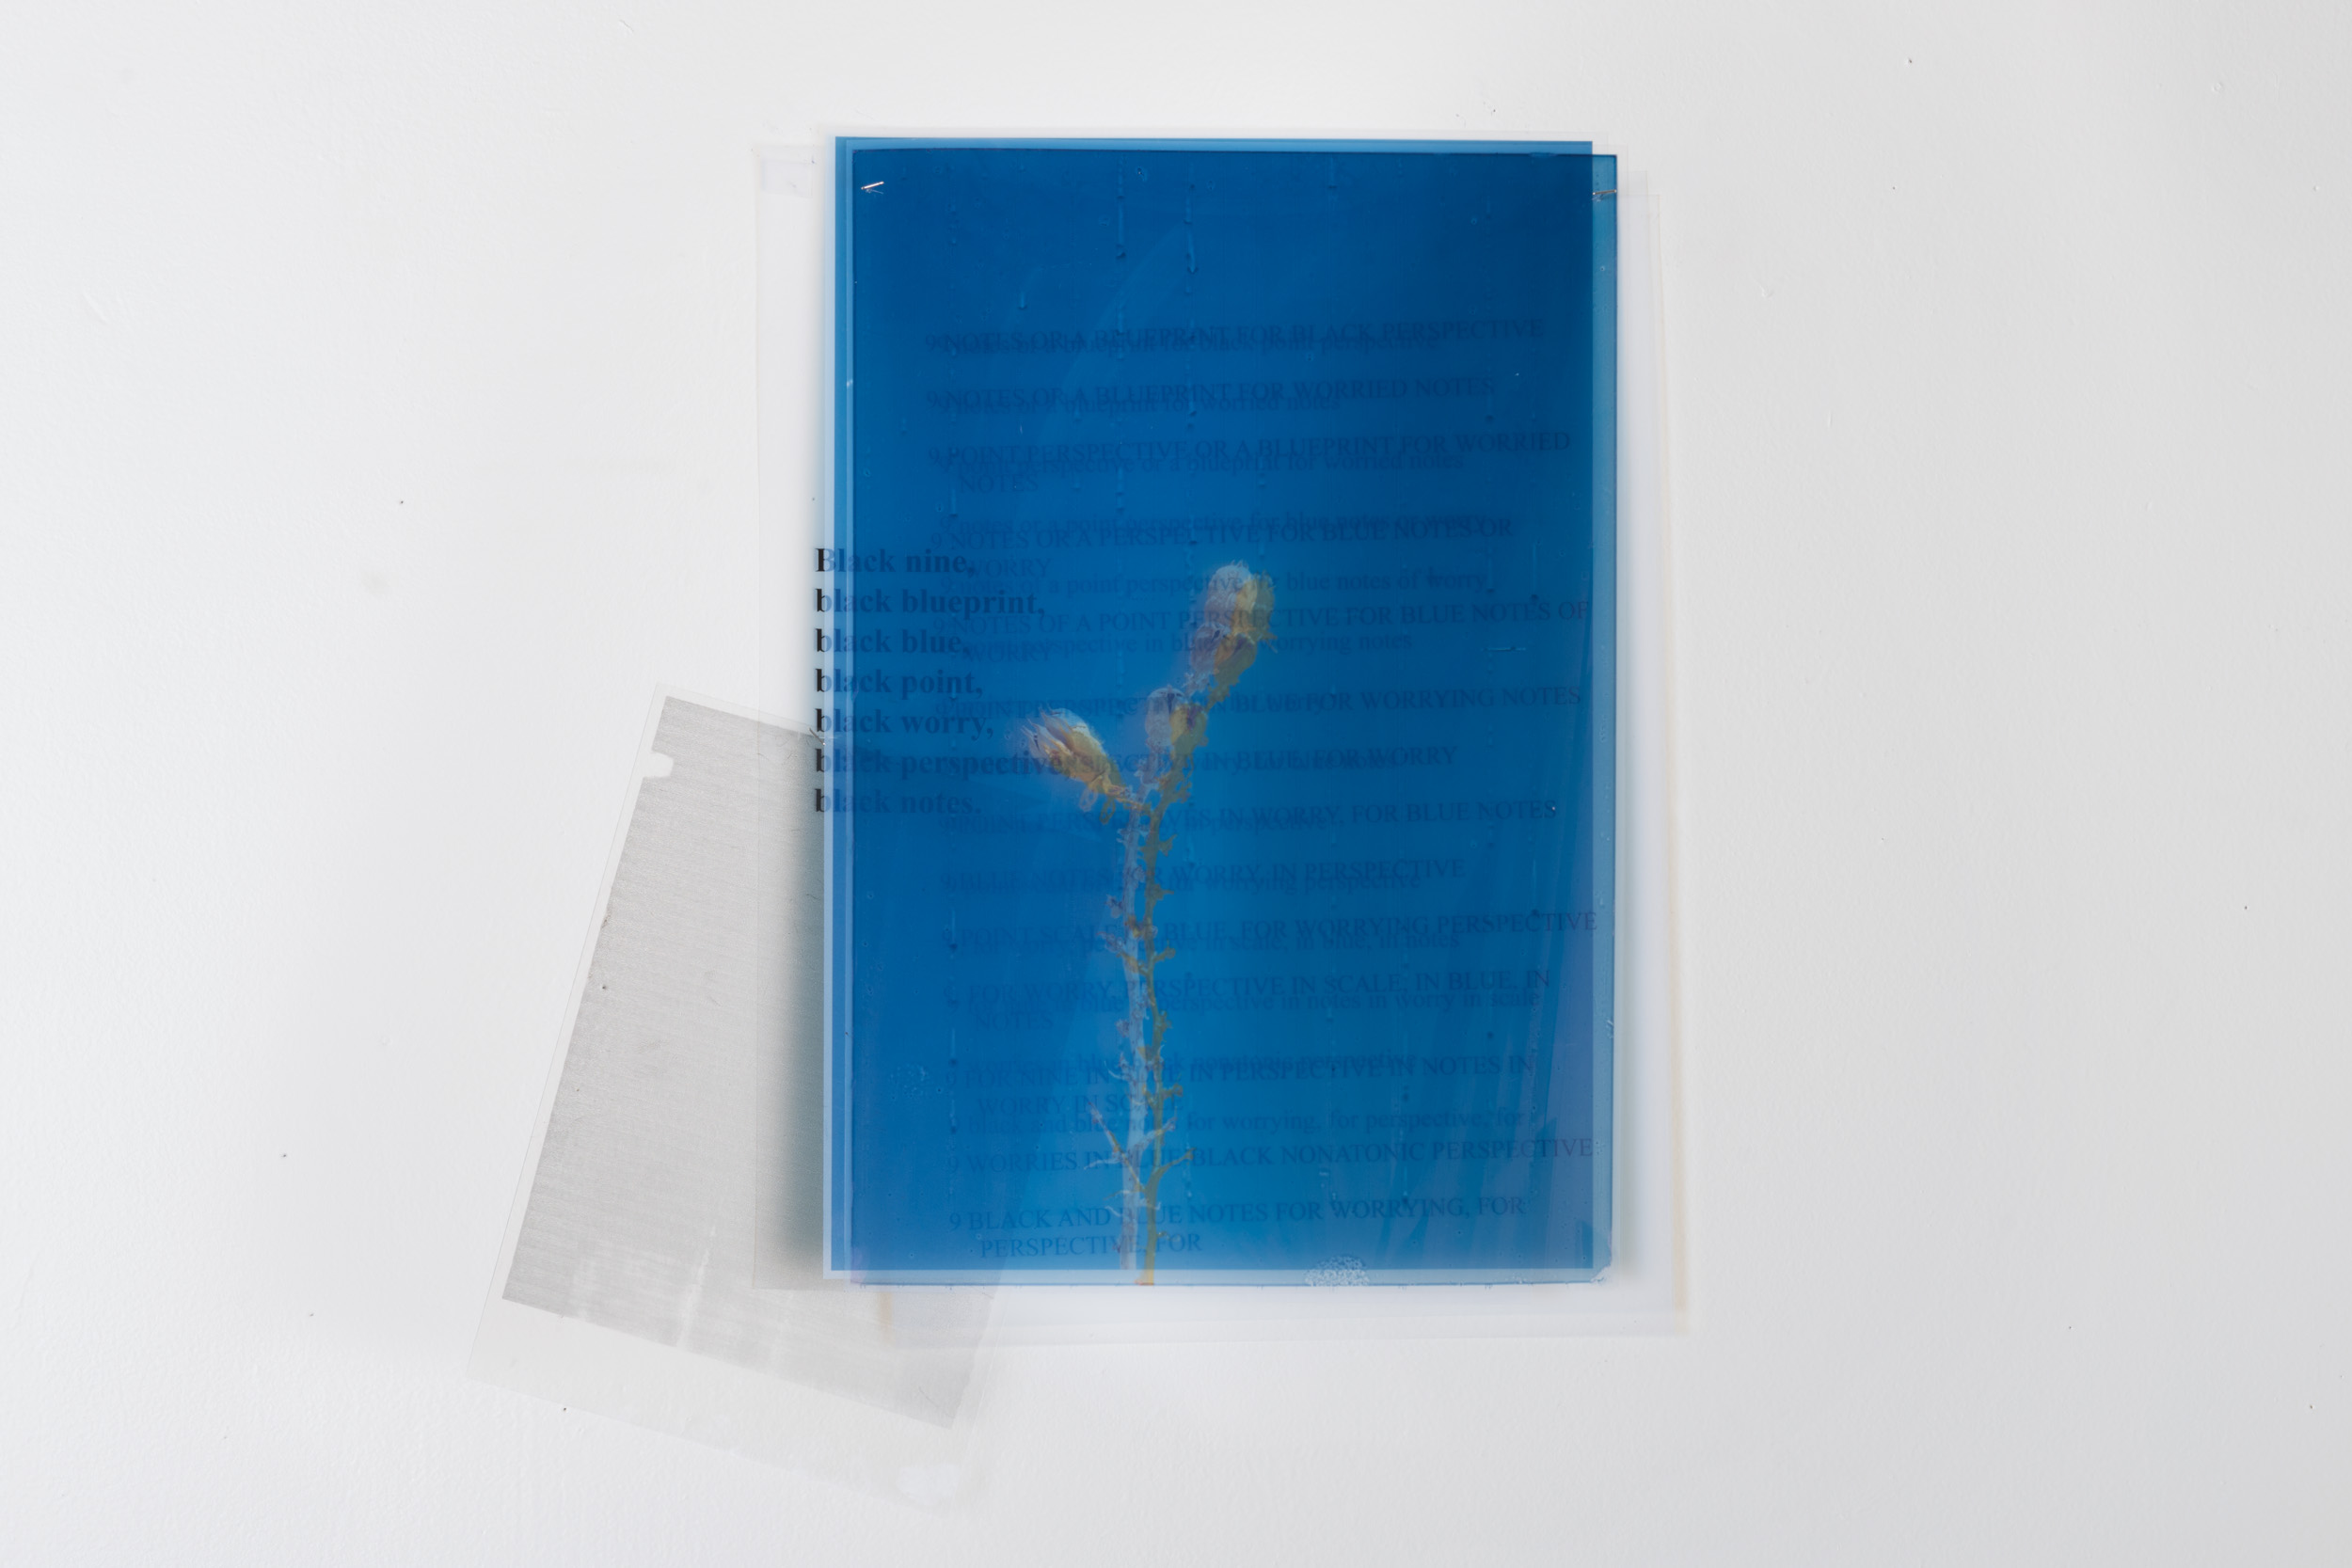 Charisse pearlina weston black blueprint 2017 digital charisse pearlina weston black blueprint 2017 digital photographic print on transparencies 9 malvernweather Image collections